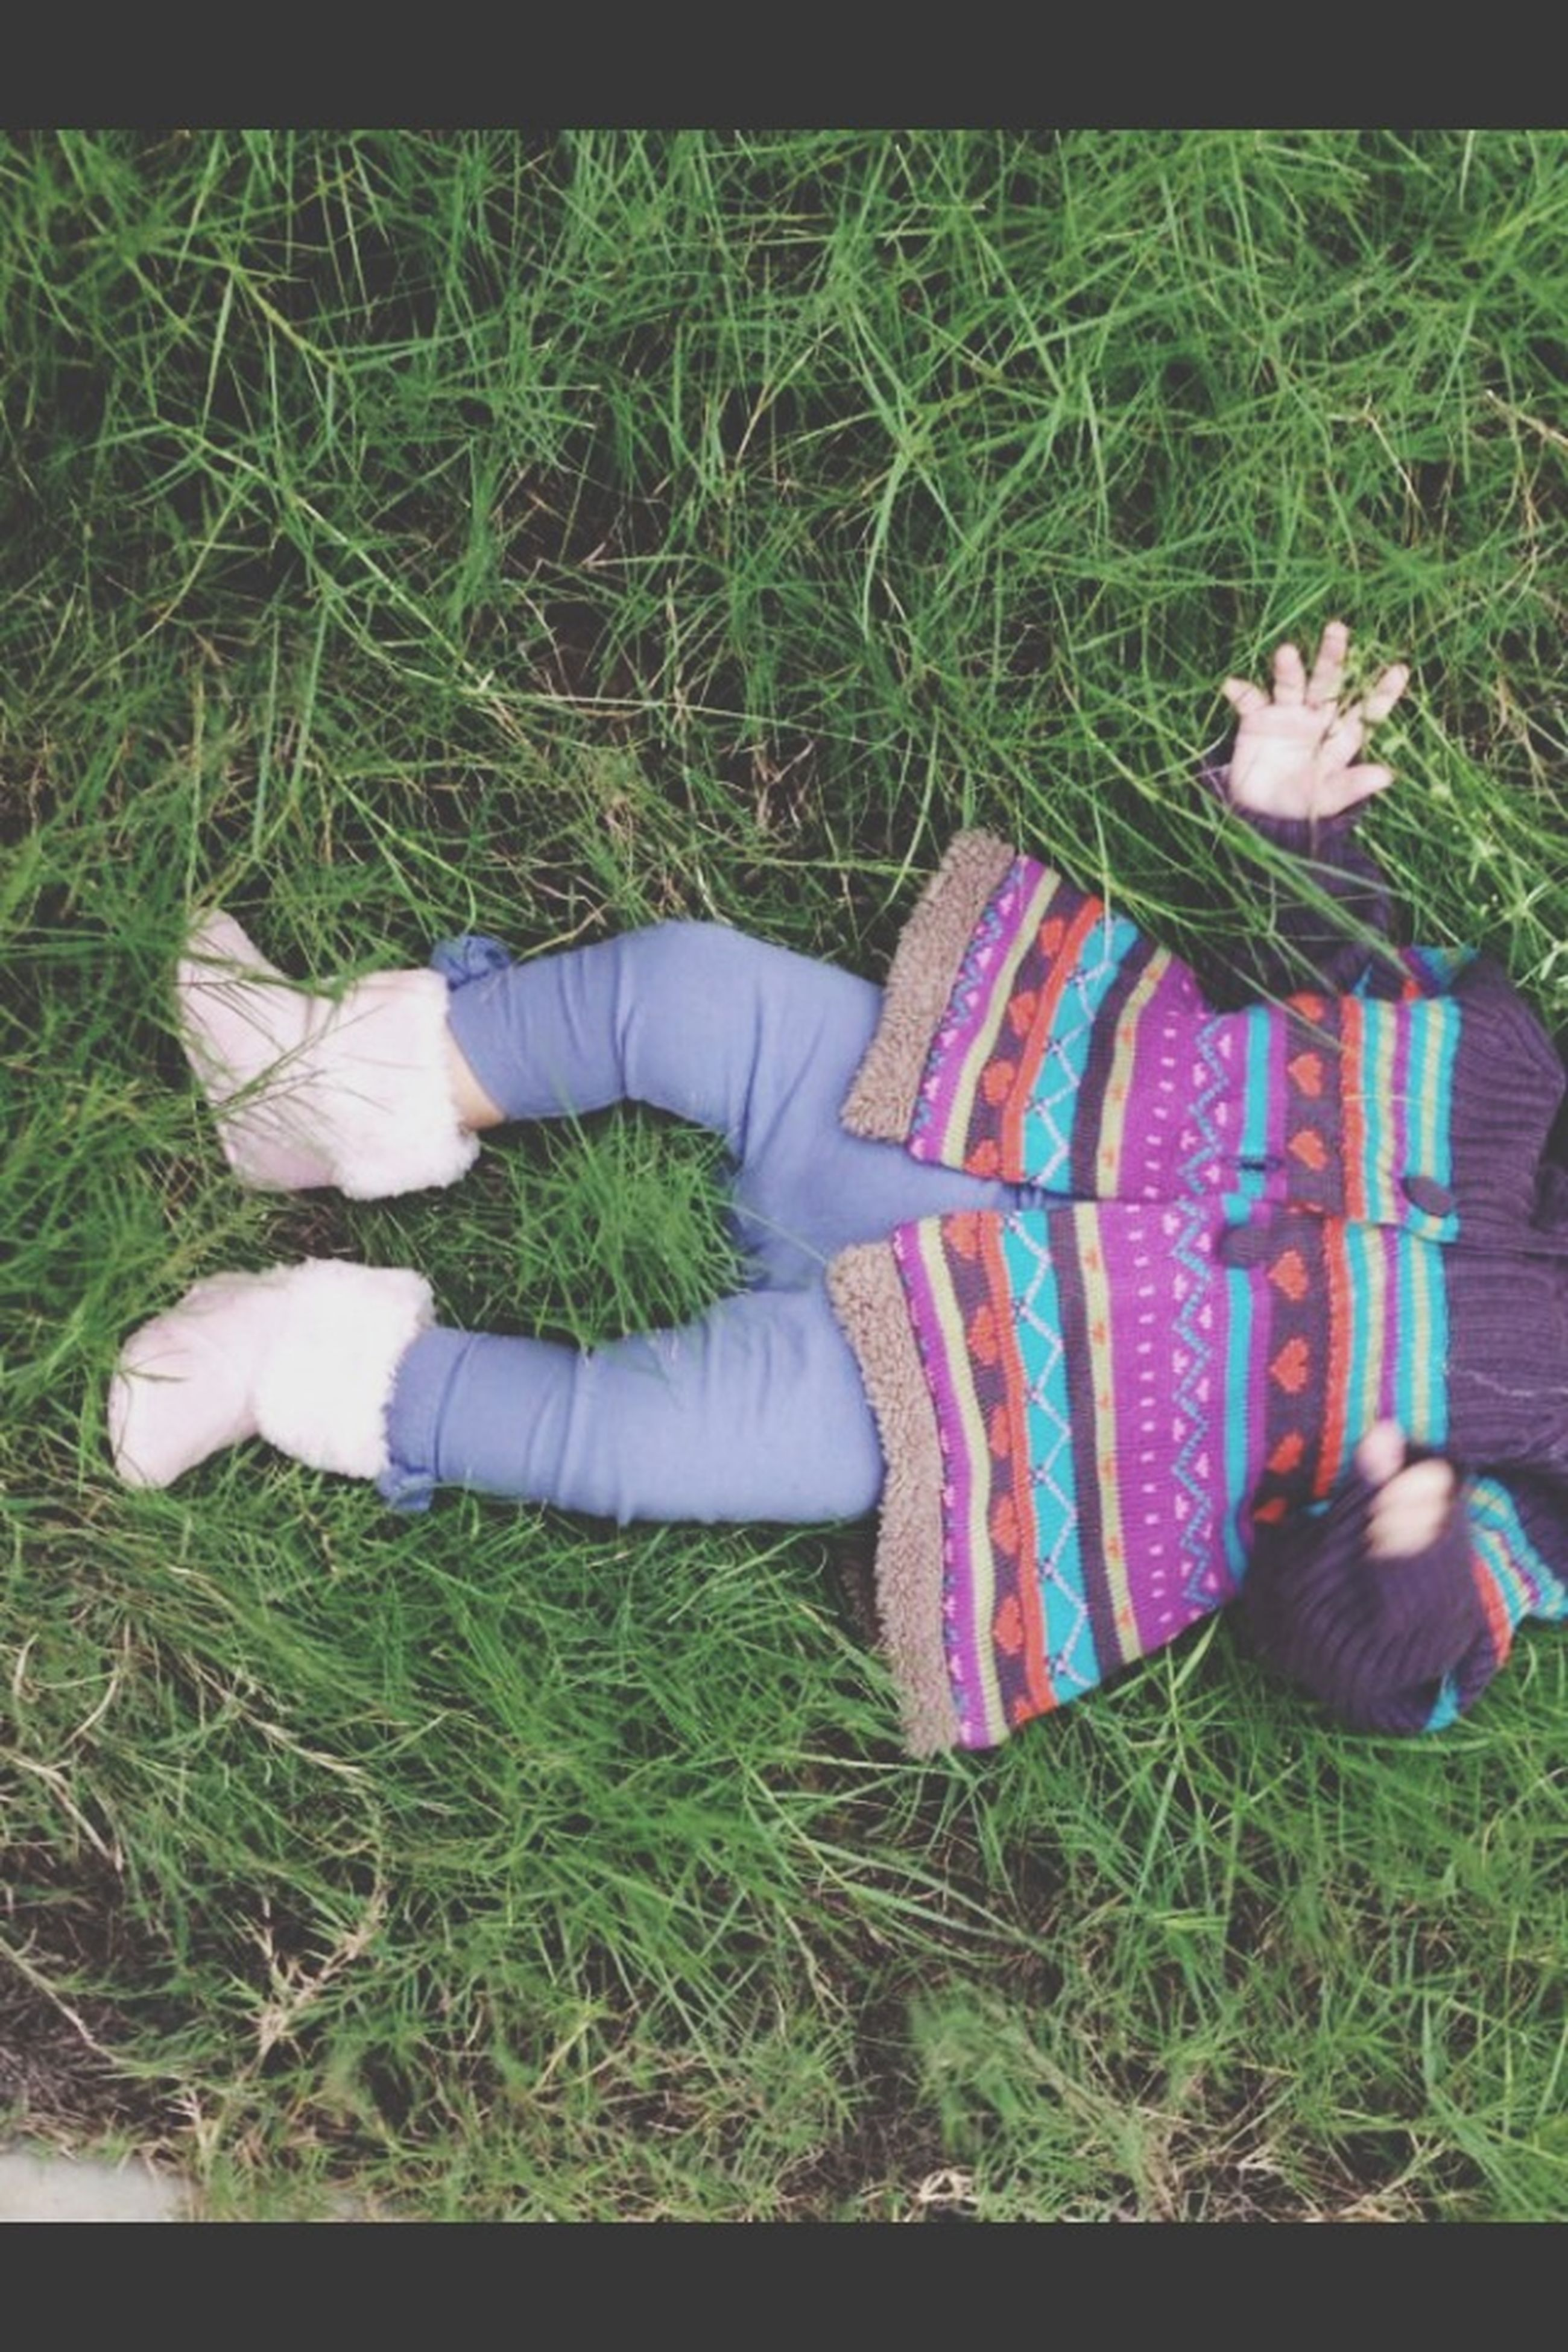 grass, grassy, low section, field, relaxation, high angle view, person, lying down, shoe, childhood, resting, sitting, footwear, green color, day, relaxing, outdoors, leisure activity